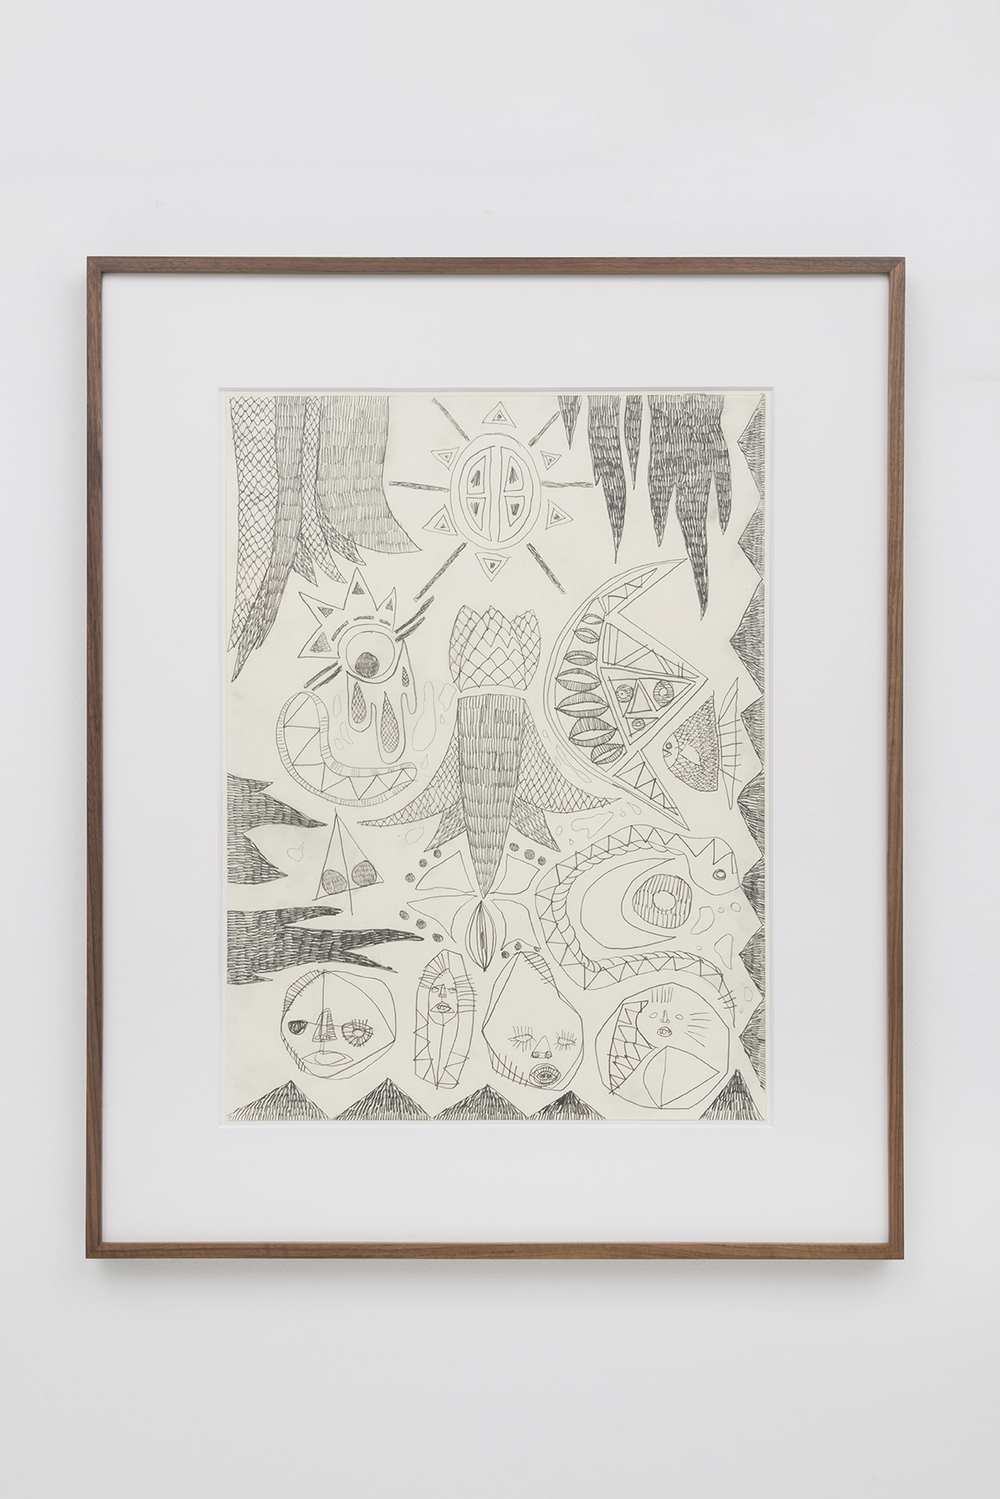 "Adam D. Miller - Stoneman Psycho Scape - 2016 - Graphite on Paper - 18 x 24"" drawing, 32 1/4 x 26 1/4"" Matted and Framed"